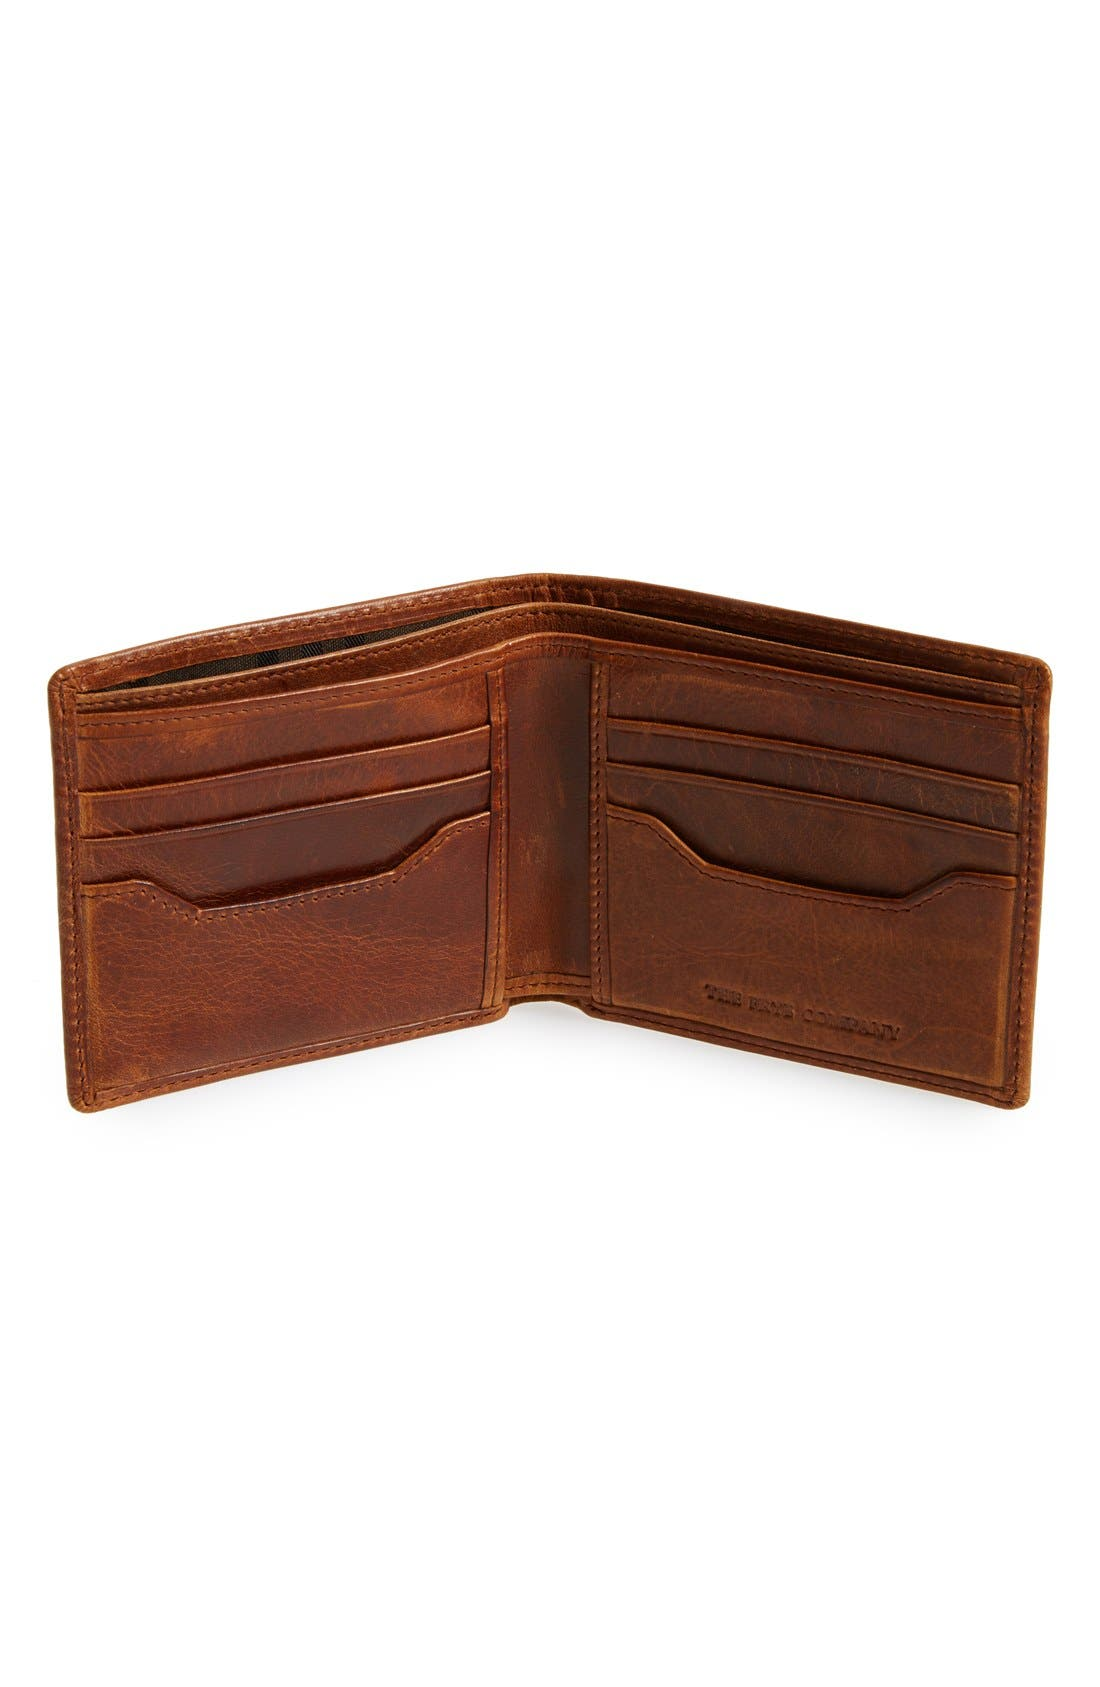 'Logan' Leather Billfold Wallet,                             Alternate thumbnail 2, color,                             Cognac